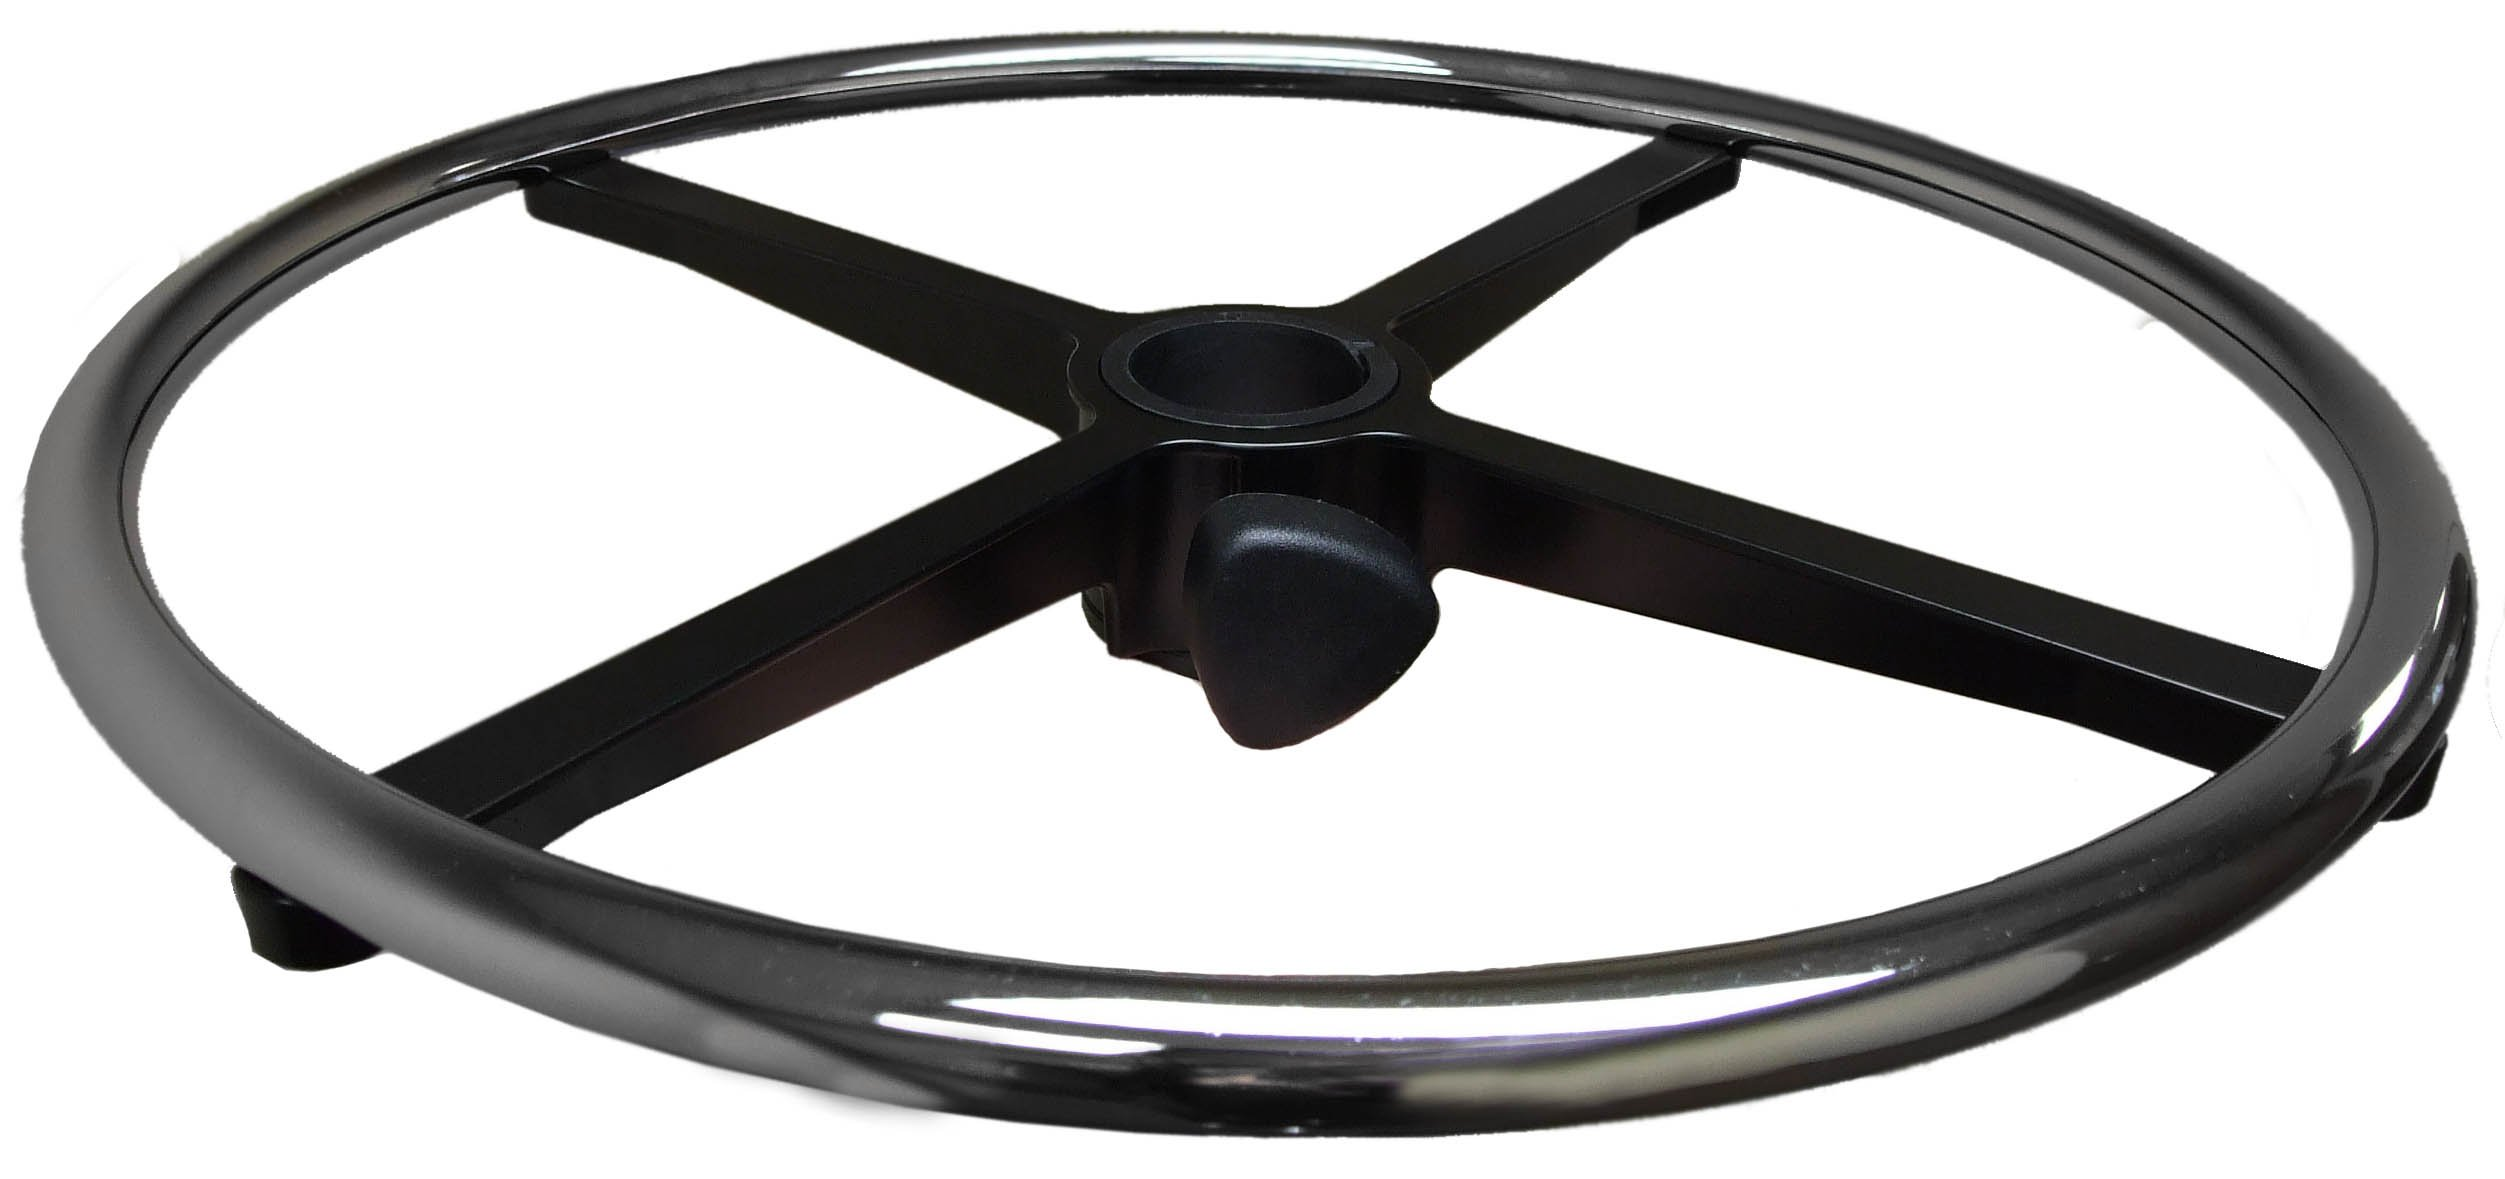 18'' Chrome Foot Rest Ring for Drafting Stool or Office Chair - S4167-3 by chairpartsonline